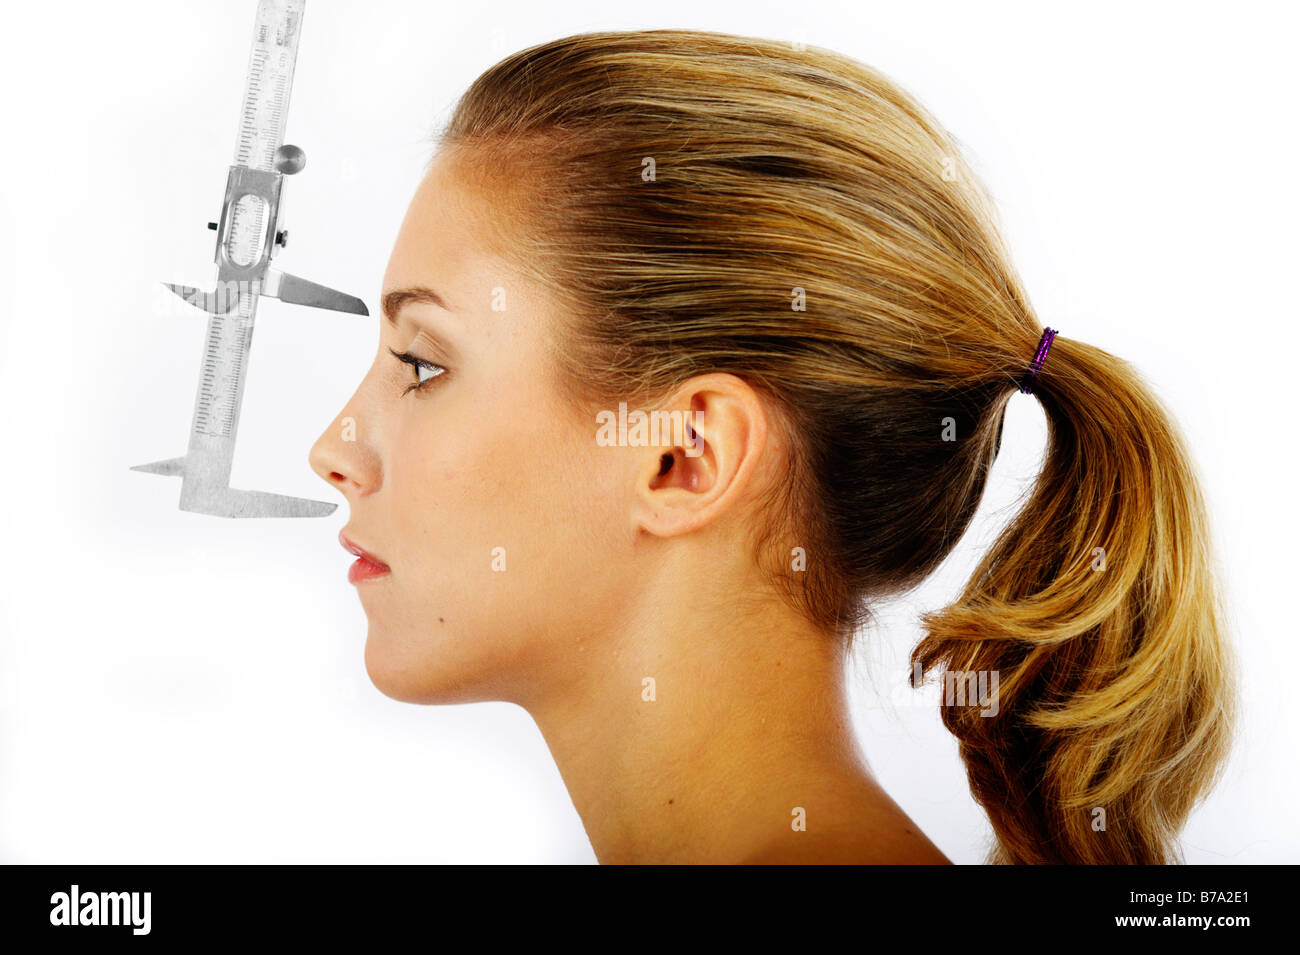 Young woman, distance between the forehead and the nose being measured with a caliper rule - Stock Image